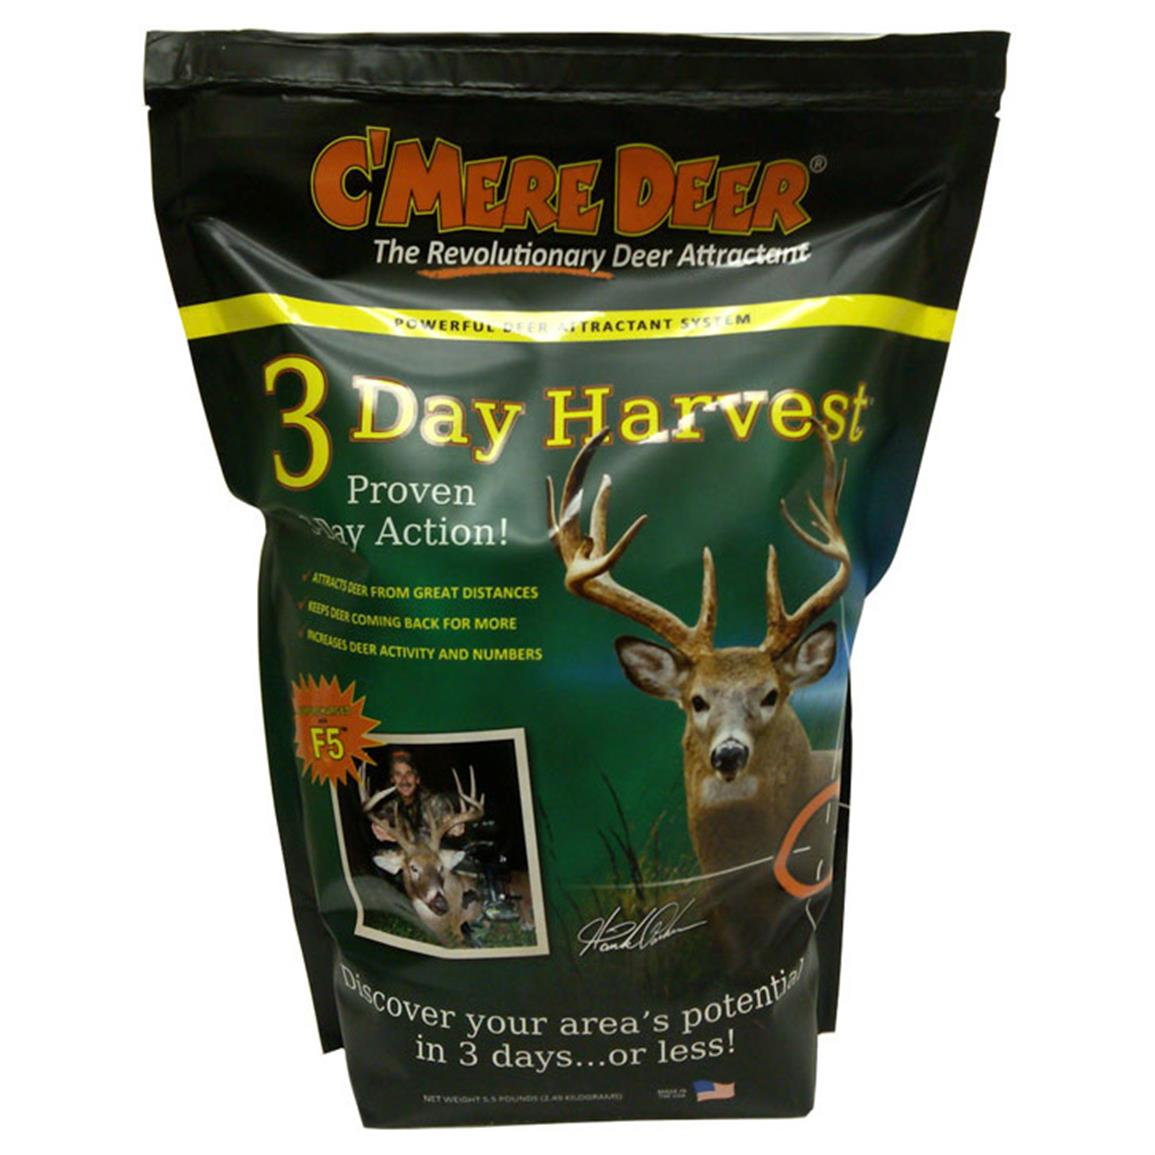 C'Mere Deer 3-Day Harvest, 5.5 lb. Bag